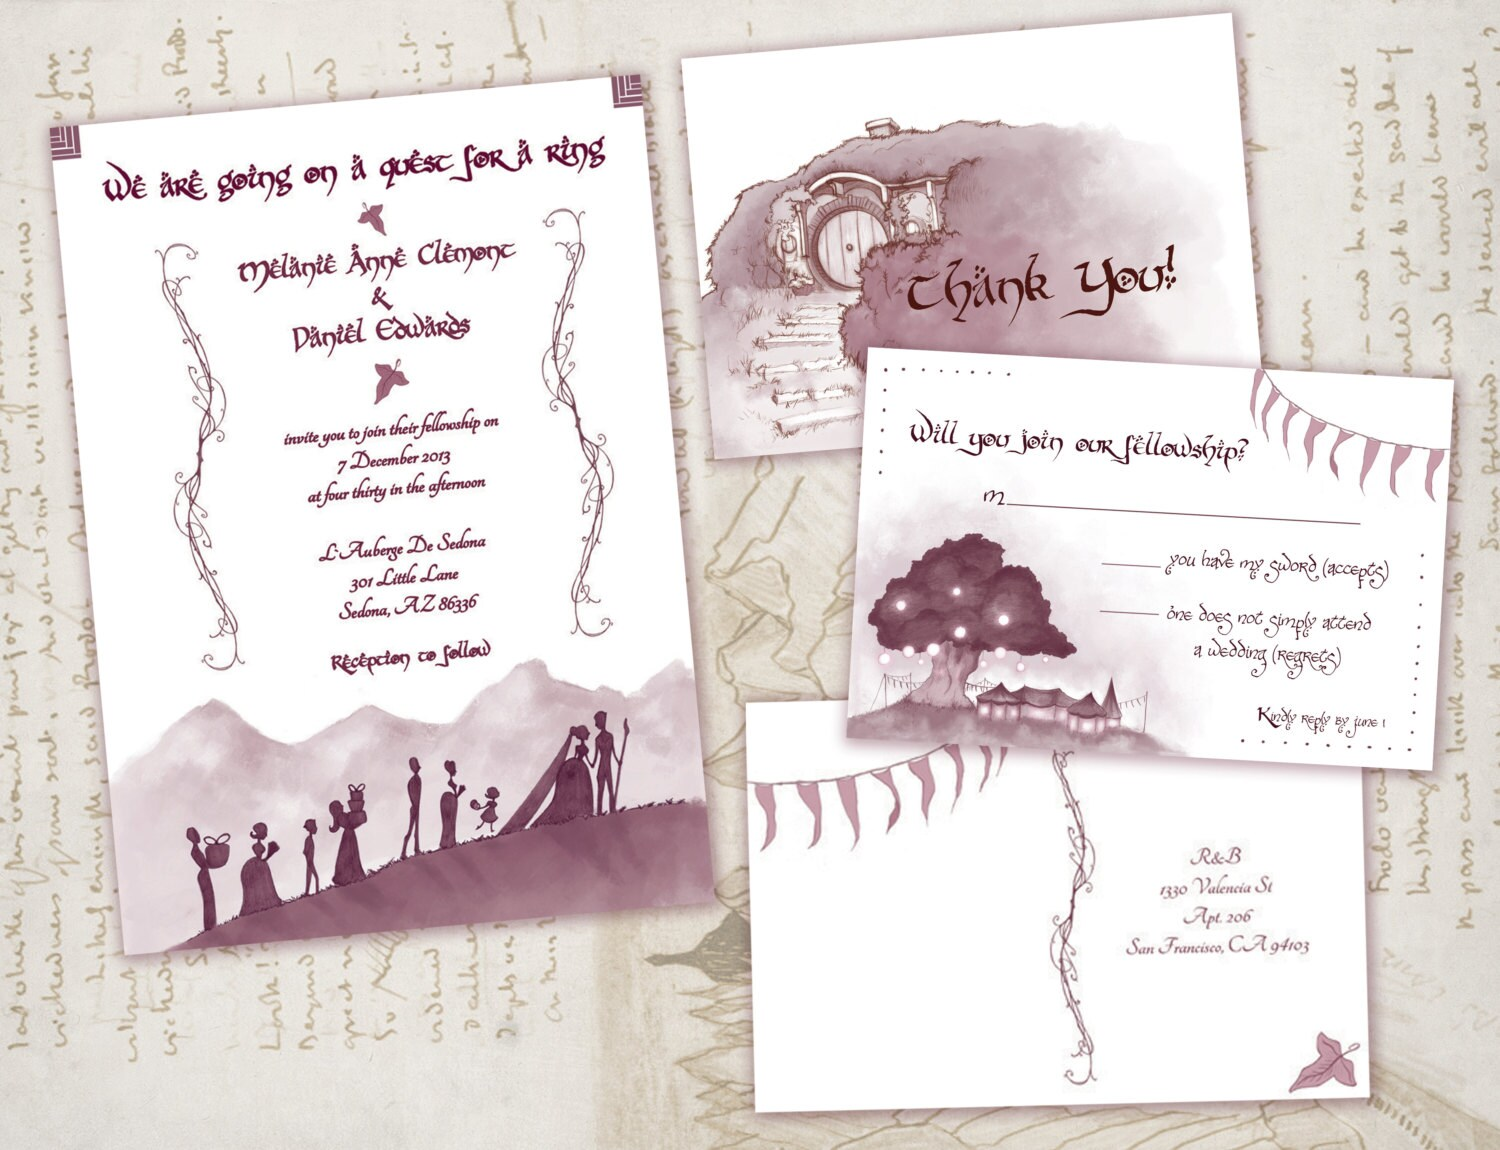 Geeky Wedding Invitation Wording: Lord Of The Rings Wedding Invitation Set By AwkwardAffections